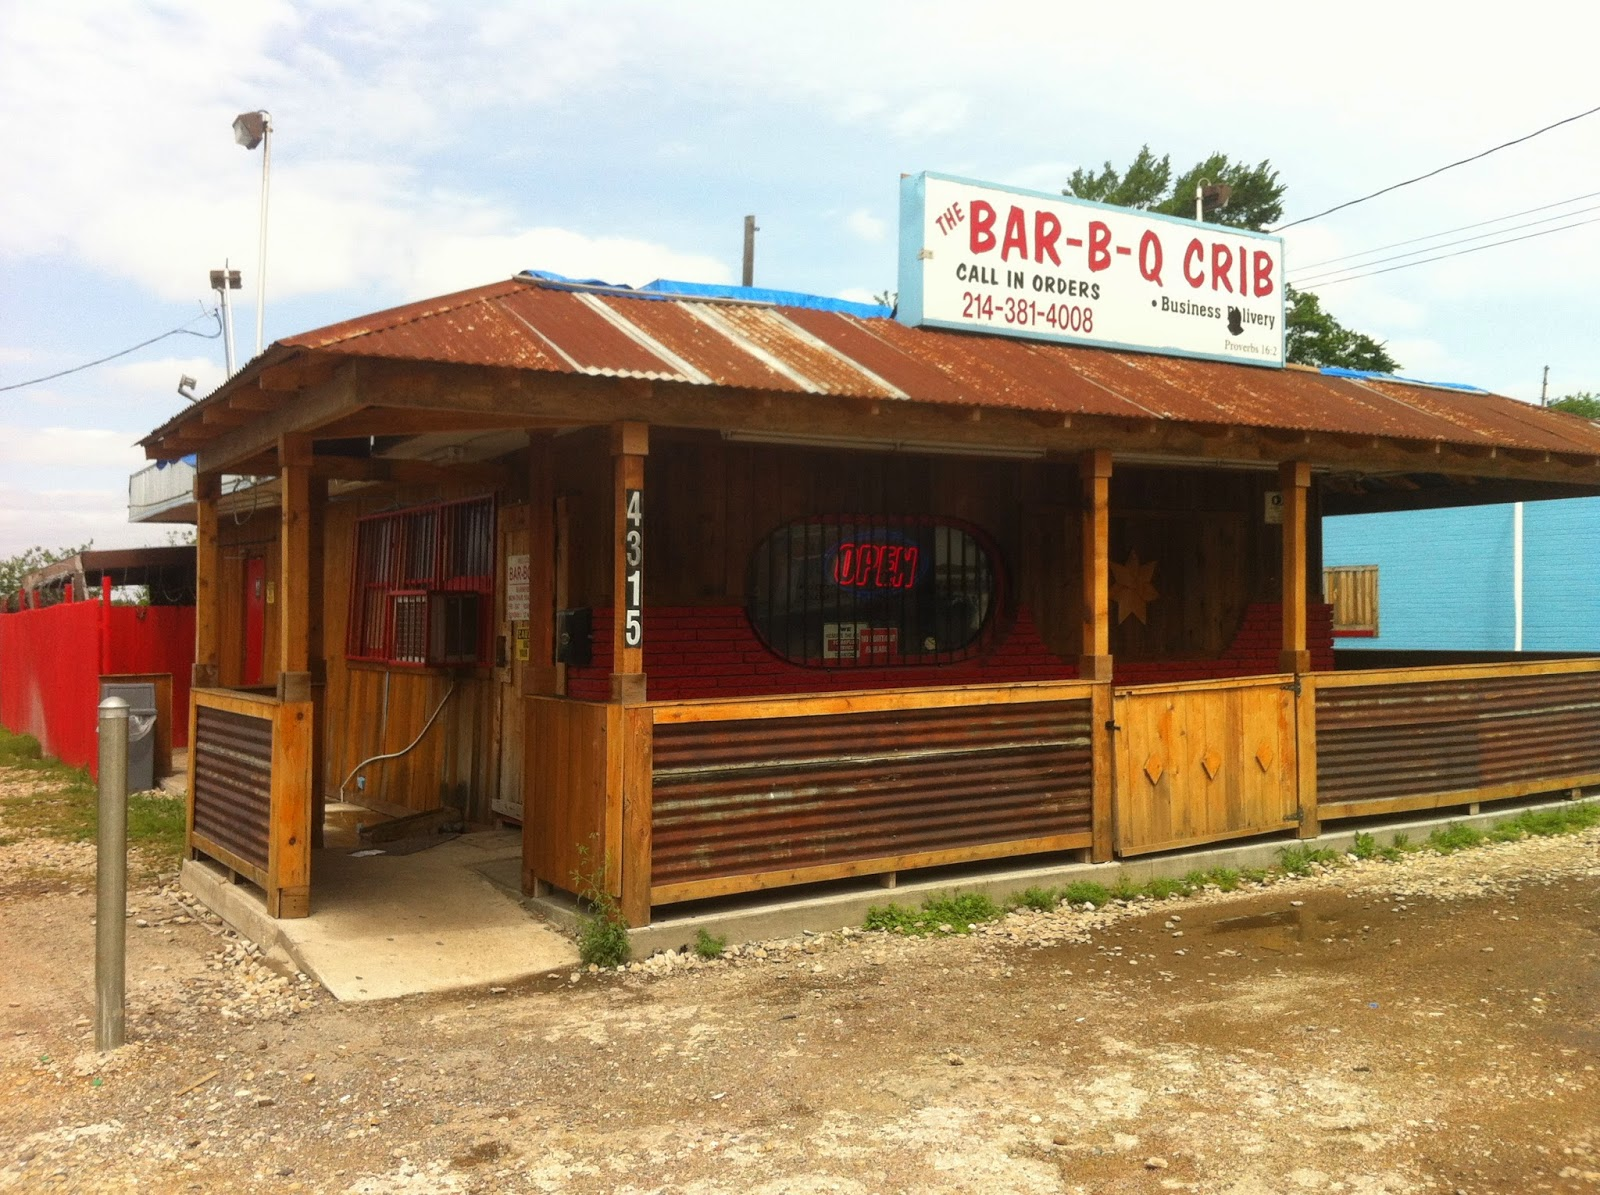 the barbecue fiend the bar b q crib dallas tx